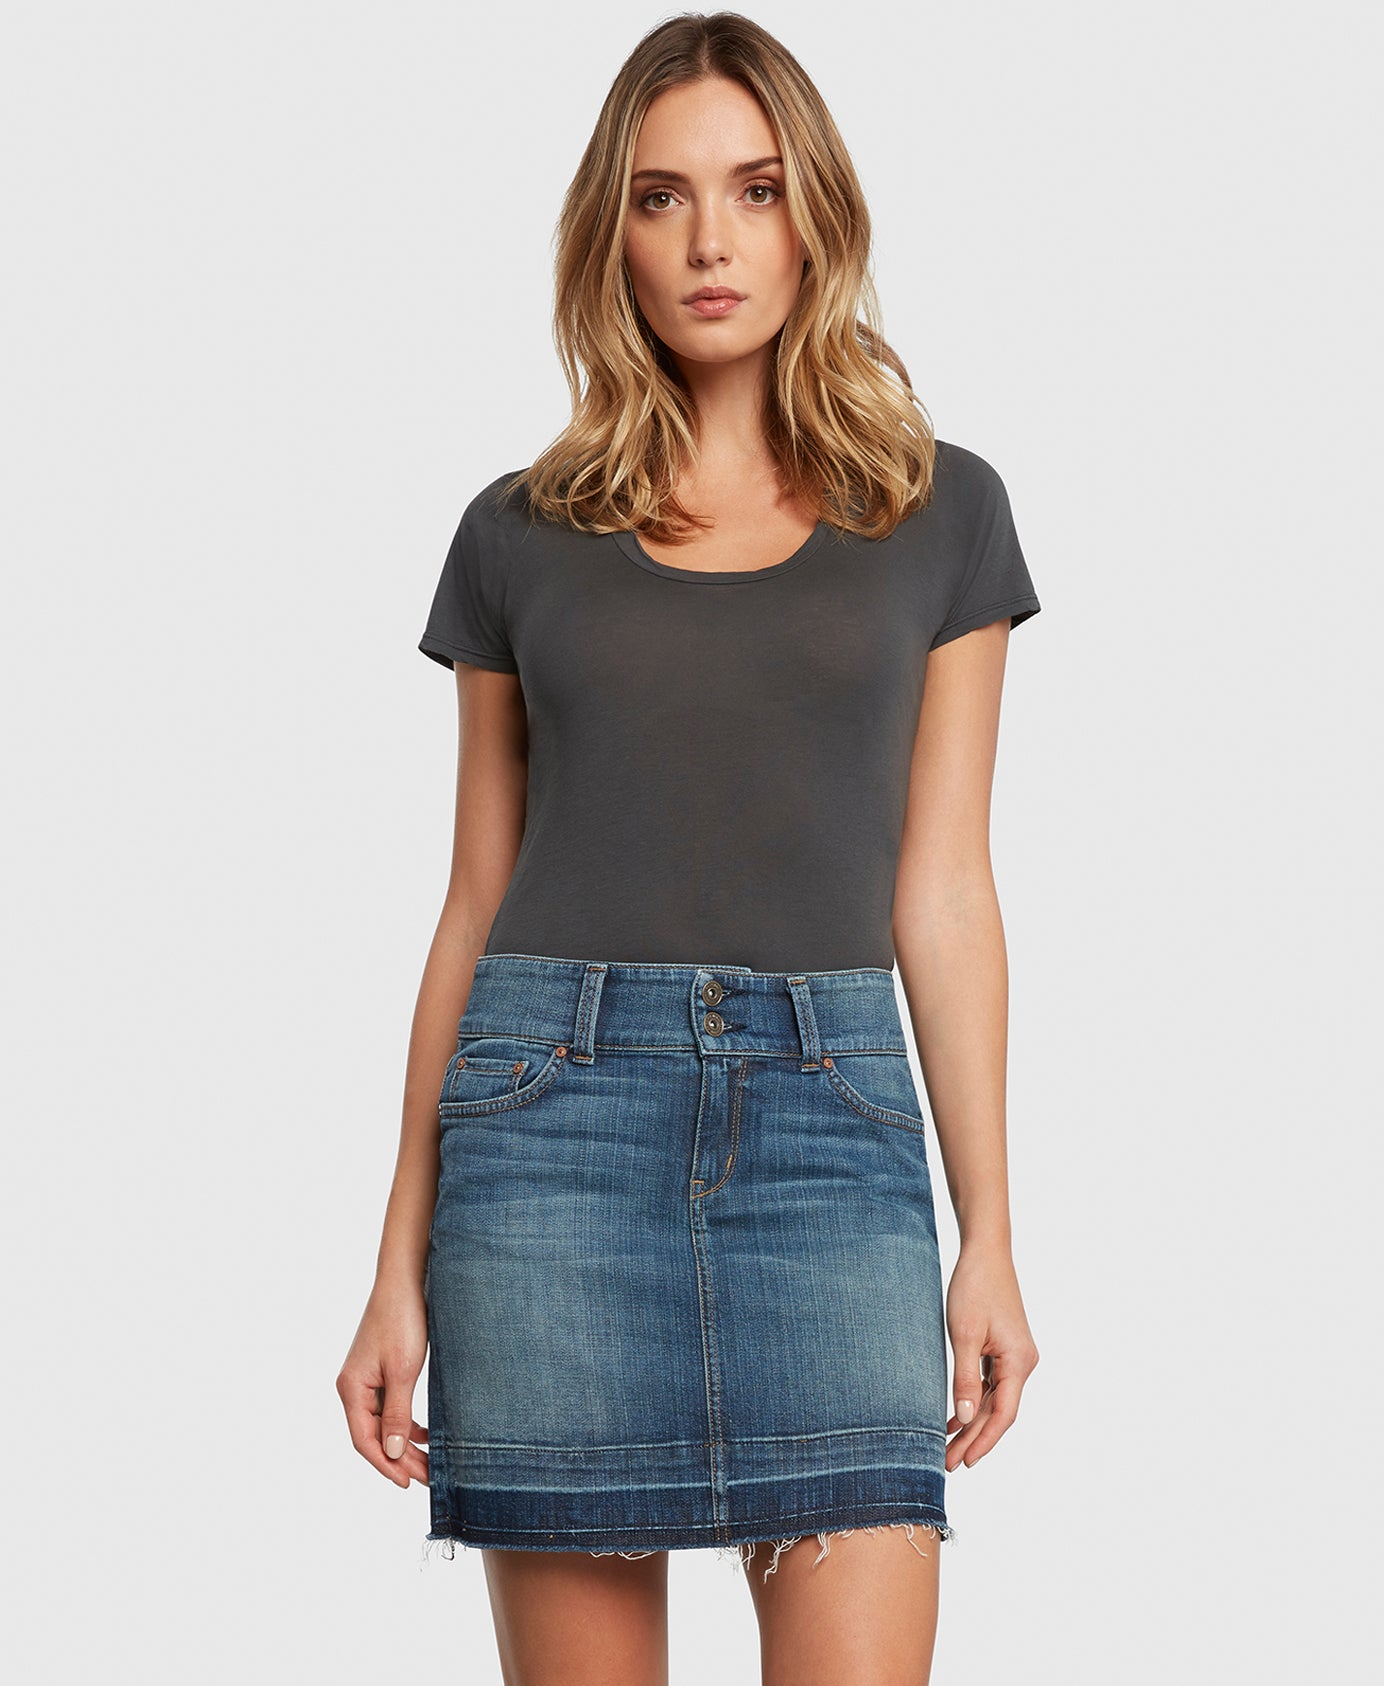 Principle denim skirt with double button waistband detail